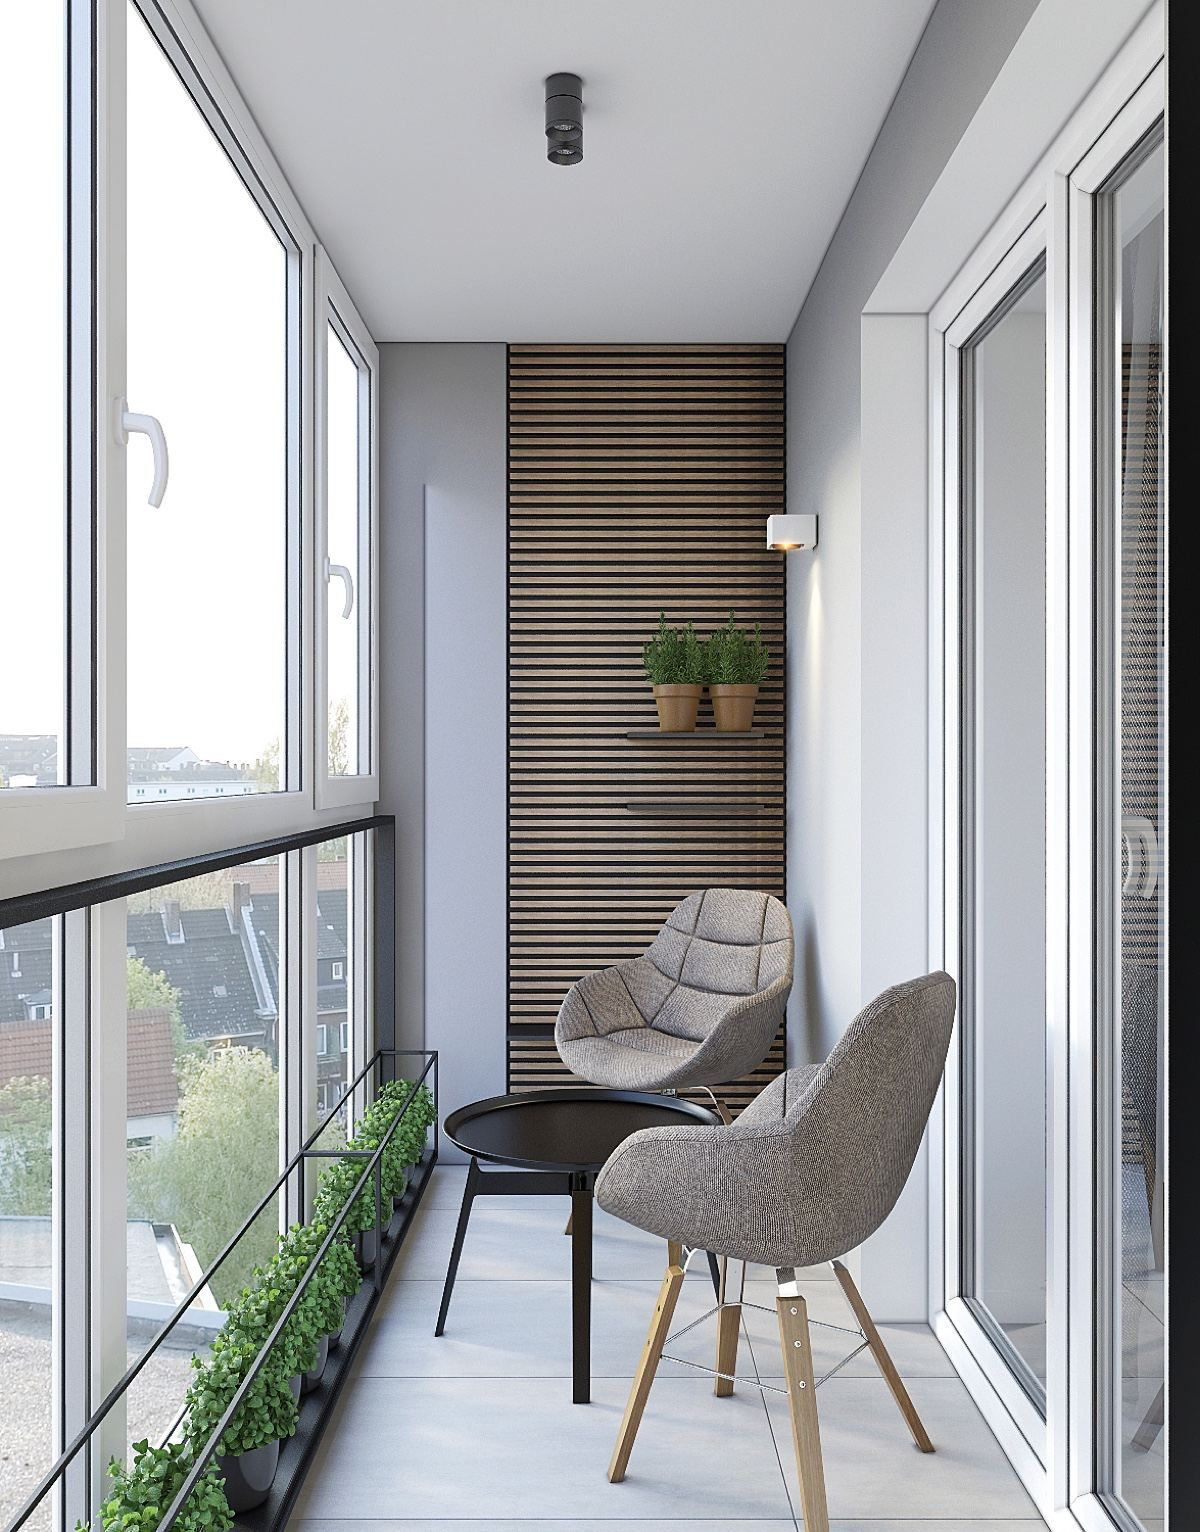 One Bedroom Interior Design City Apartments Are Abundant Central And Often Tiny For The